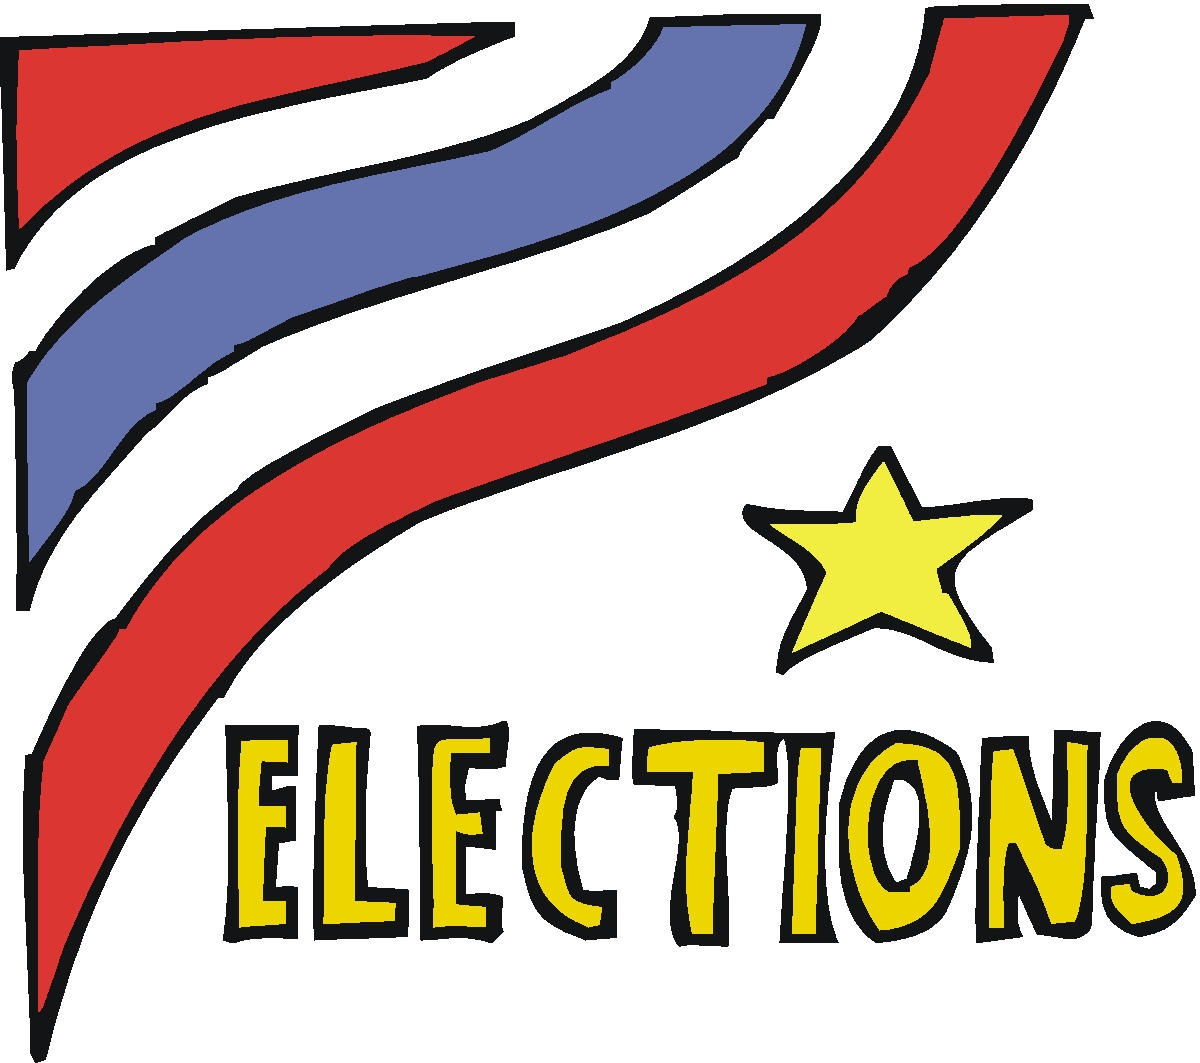 election clip art free clipart panda free clipart images rh clipartpanda com Election Day Graphics Election 2014 Clip Art